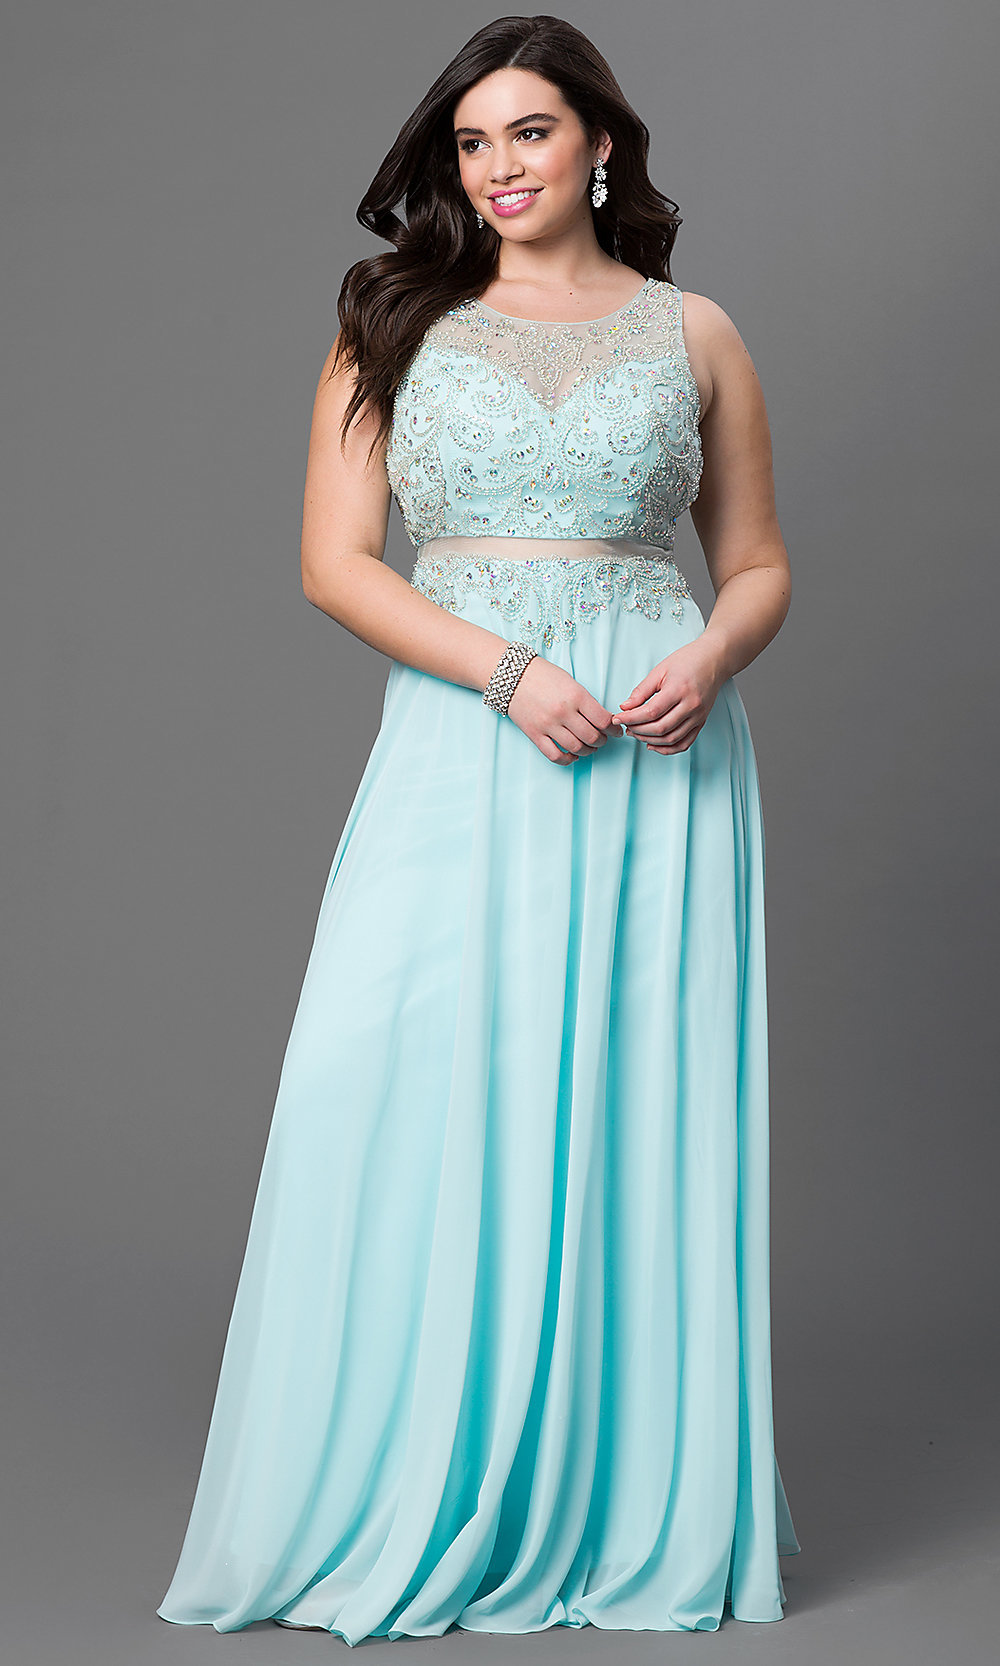 Blue Plus-Size Homecoming and Prom Dresses - PromGirl